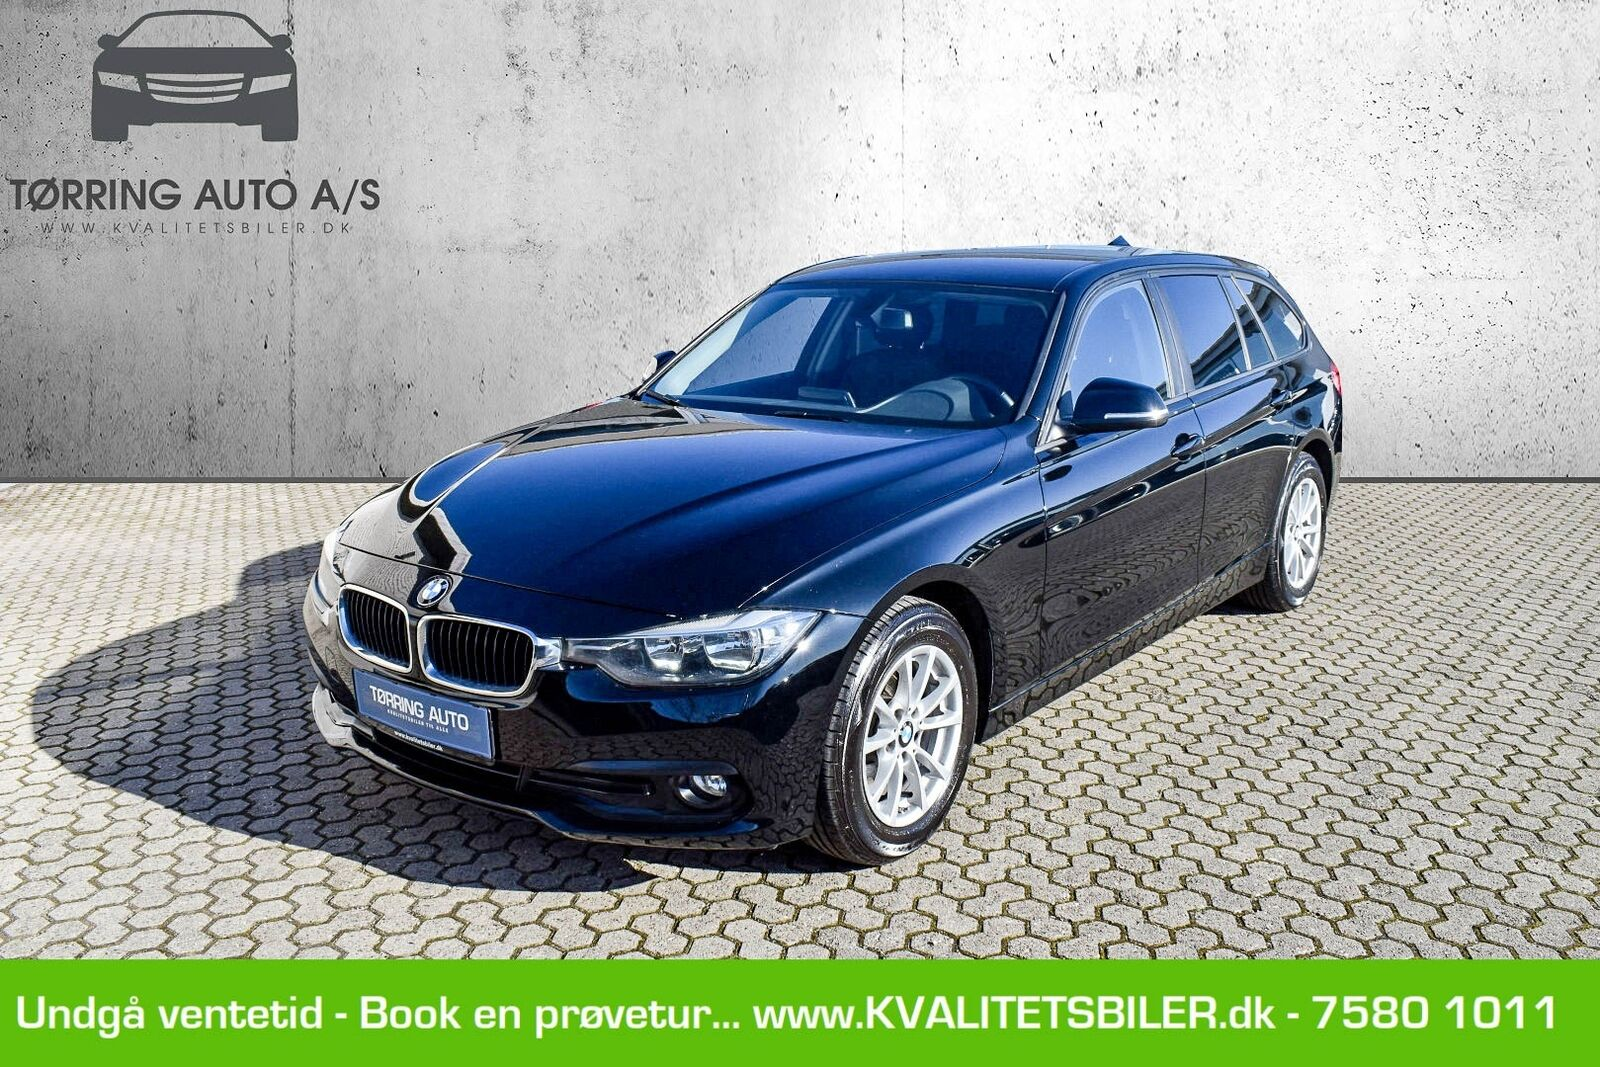 BMW 318d 2,0 Touring 5d - 179.900 kr.